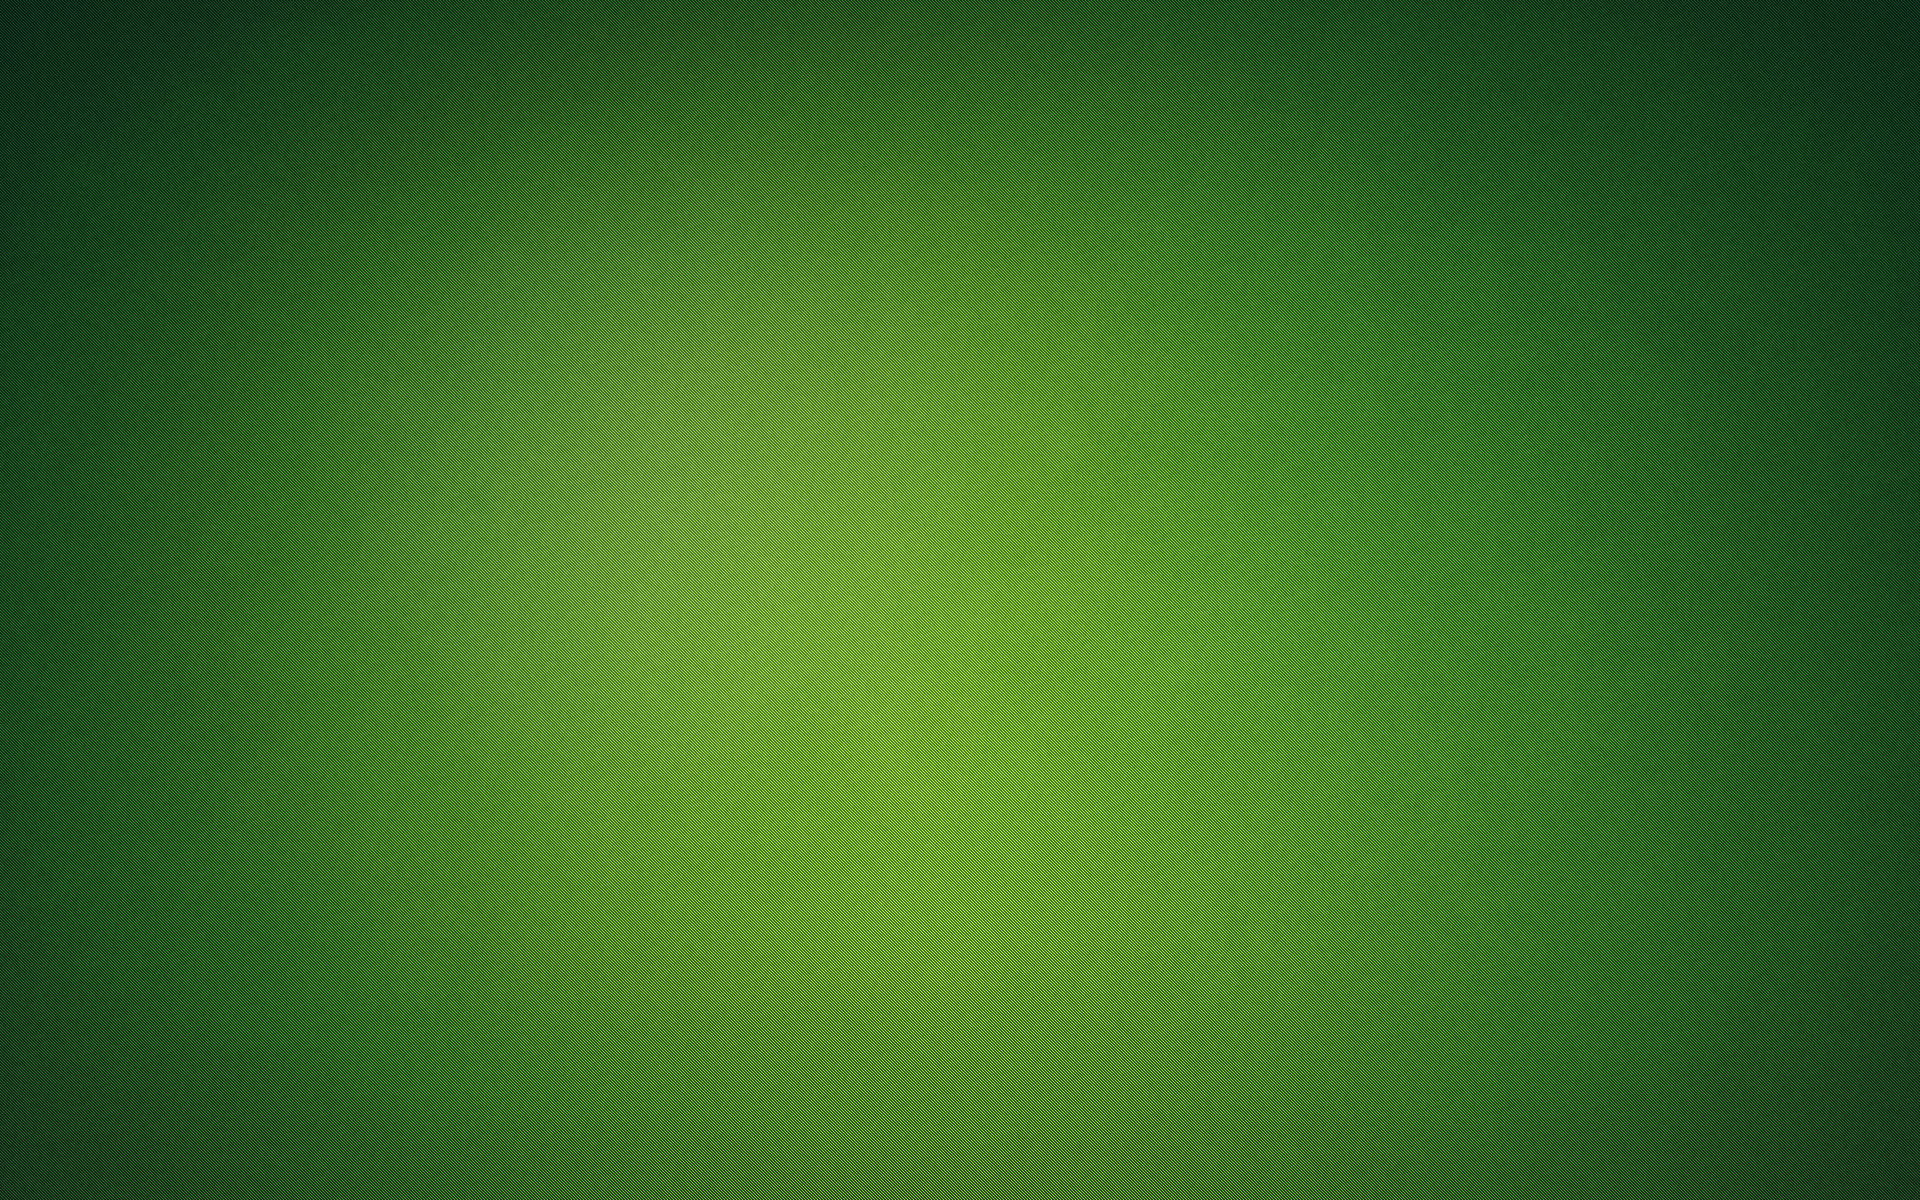 1920x1200 Green Background Design wallpaper